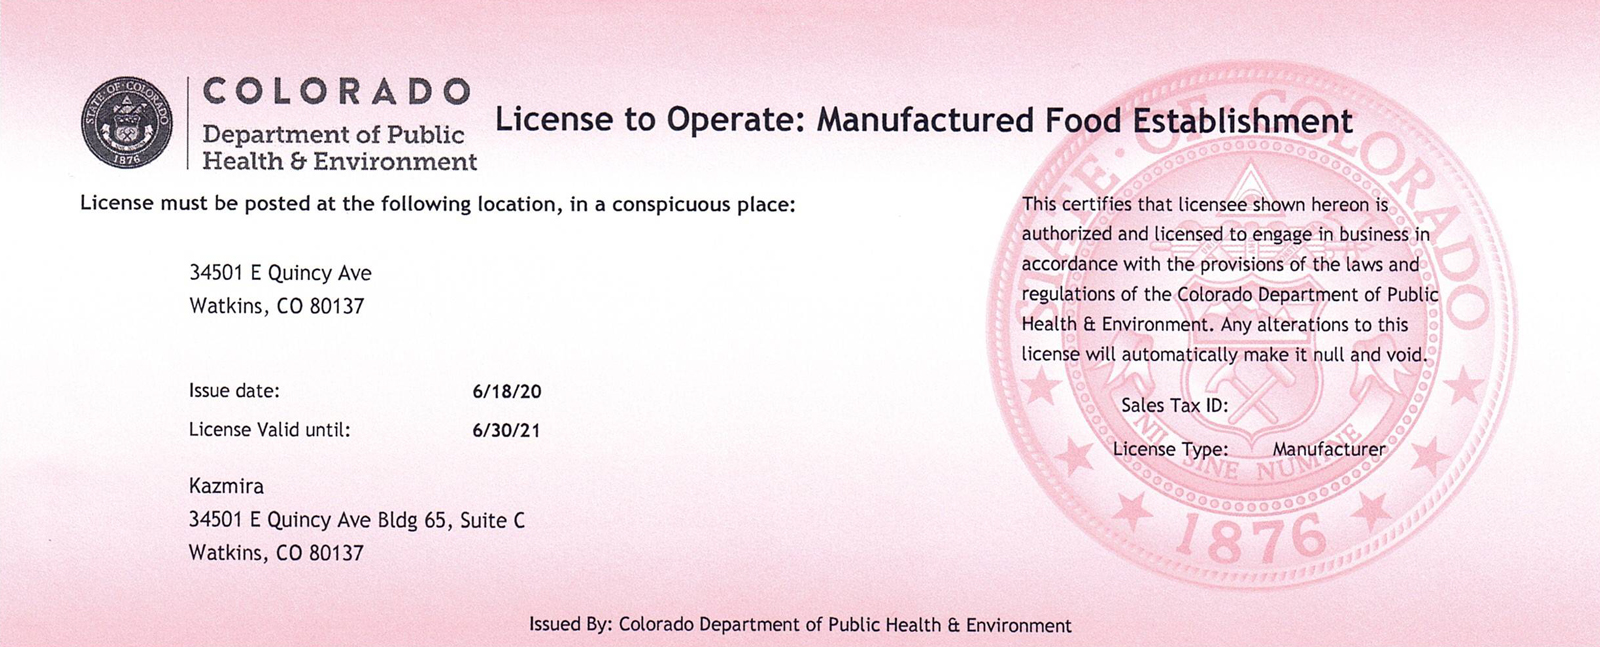 Kazmira CDPHE License